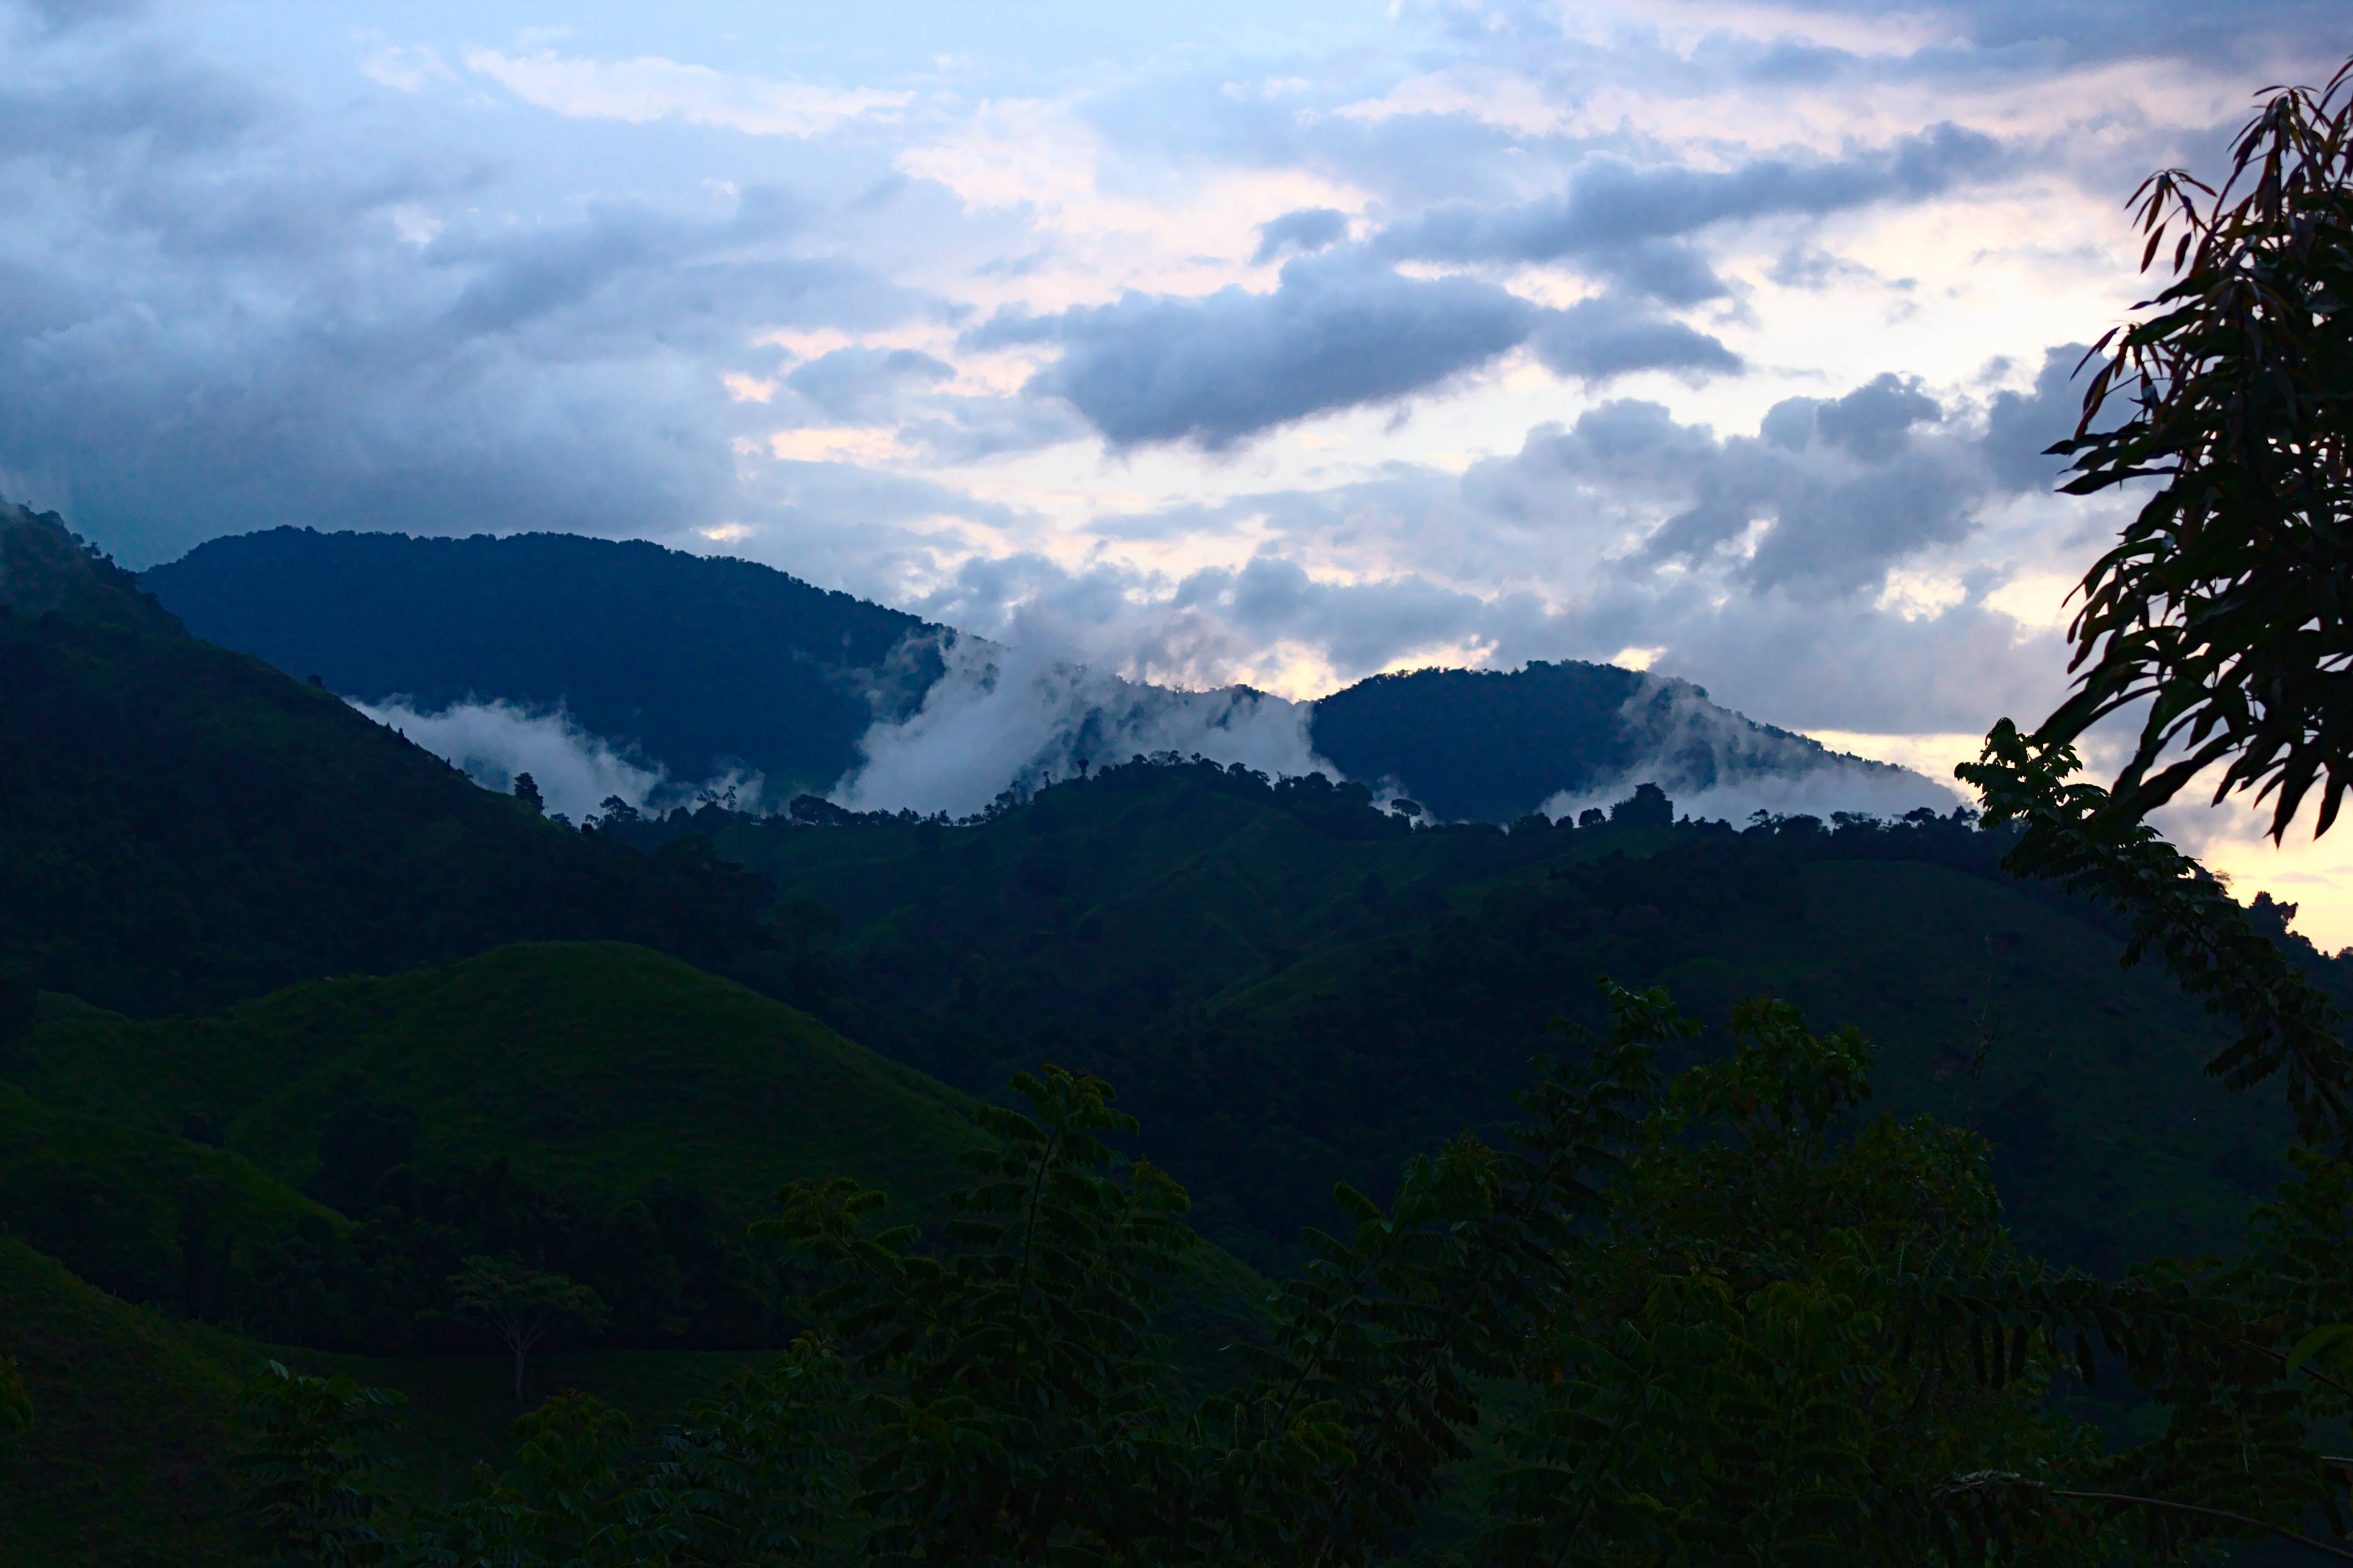 The views from Ricardito Camp, known locally as Vista Hermosa